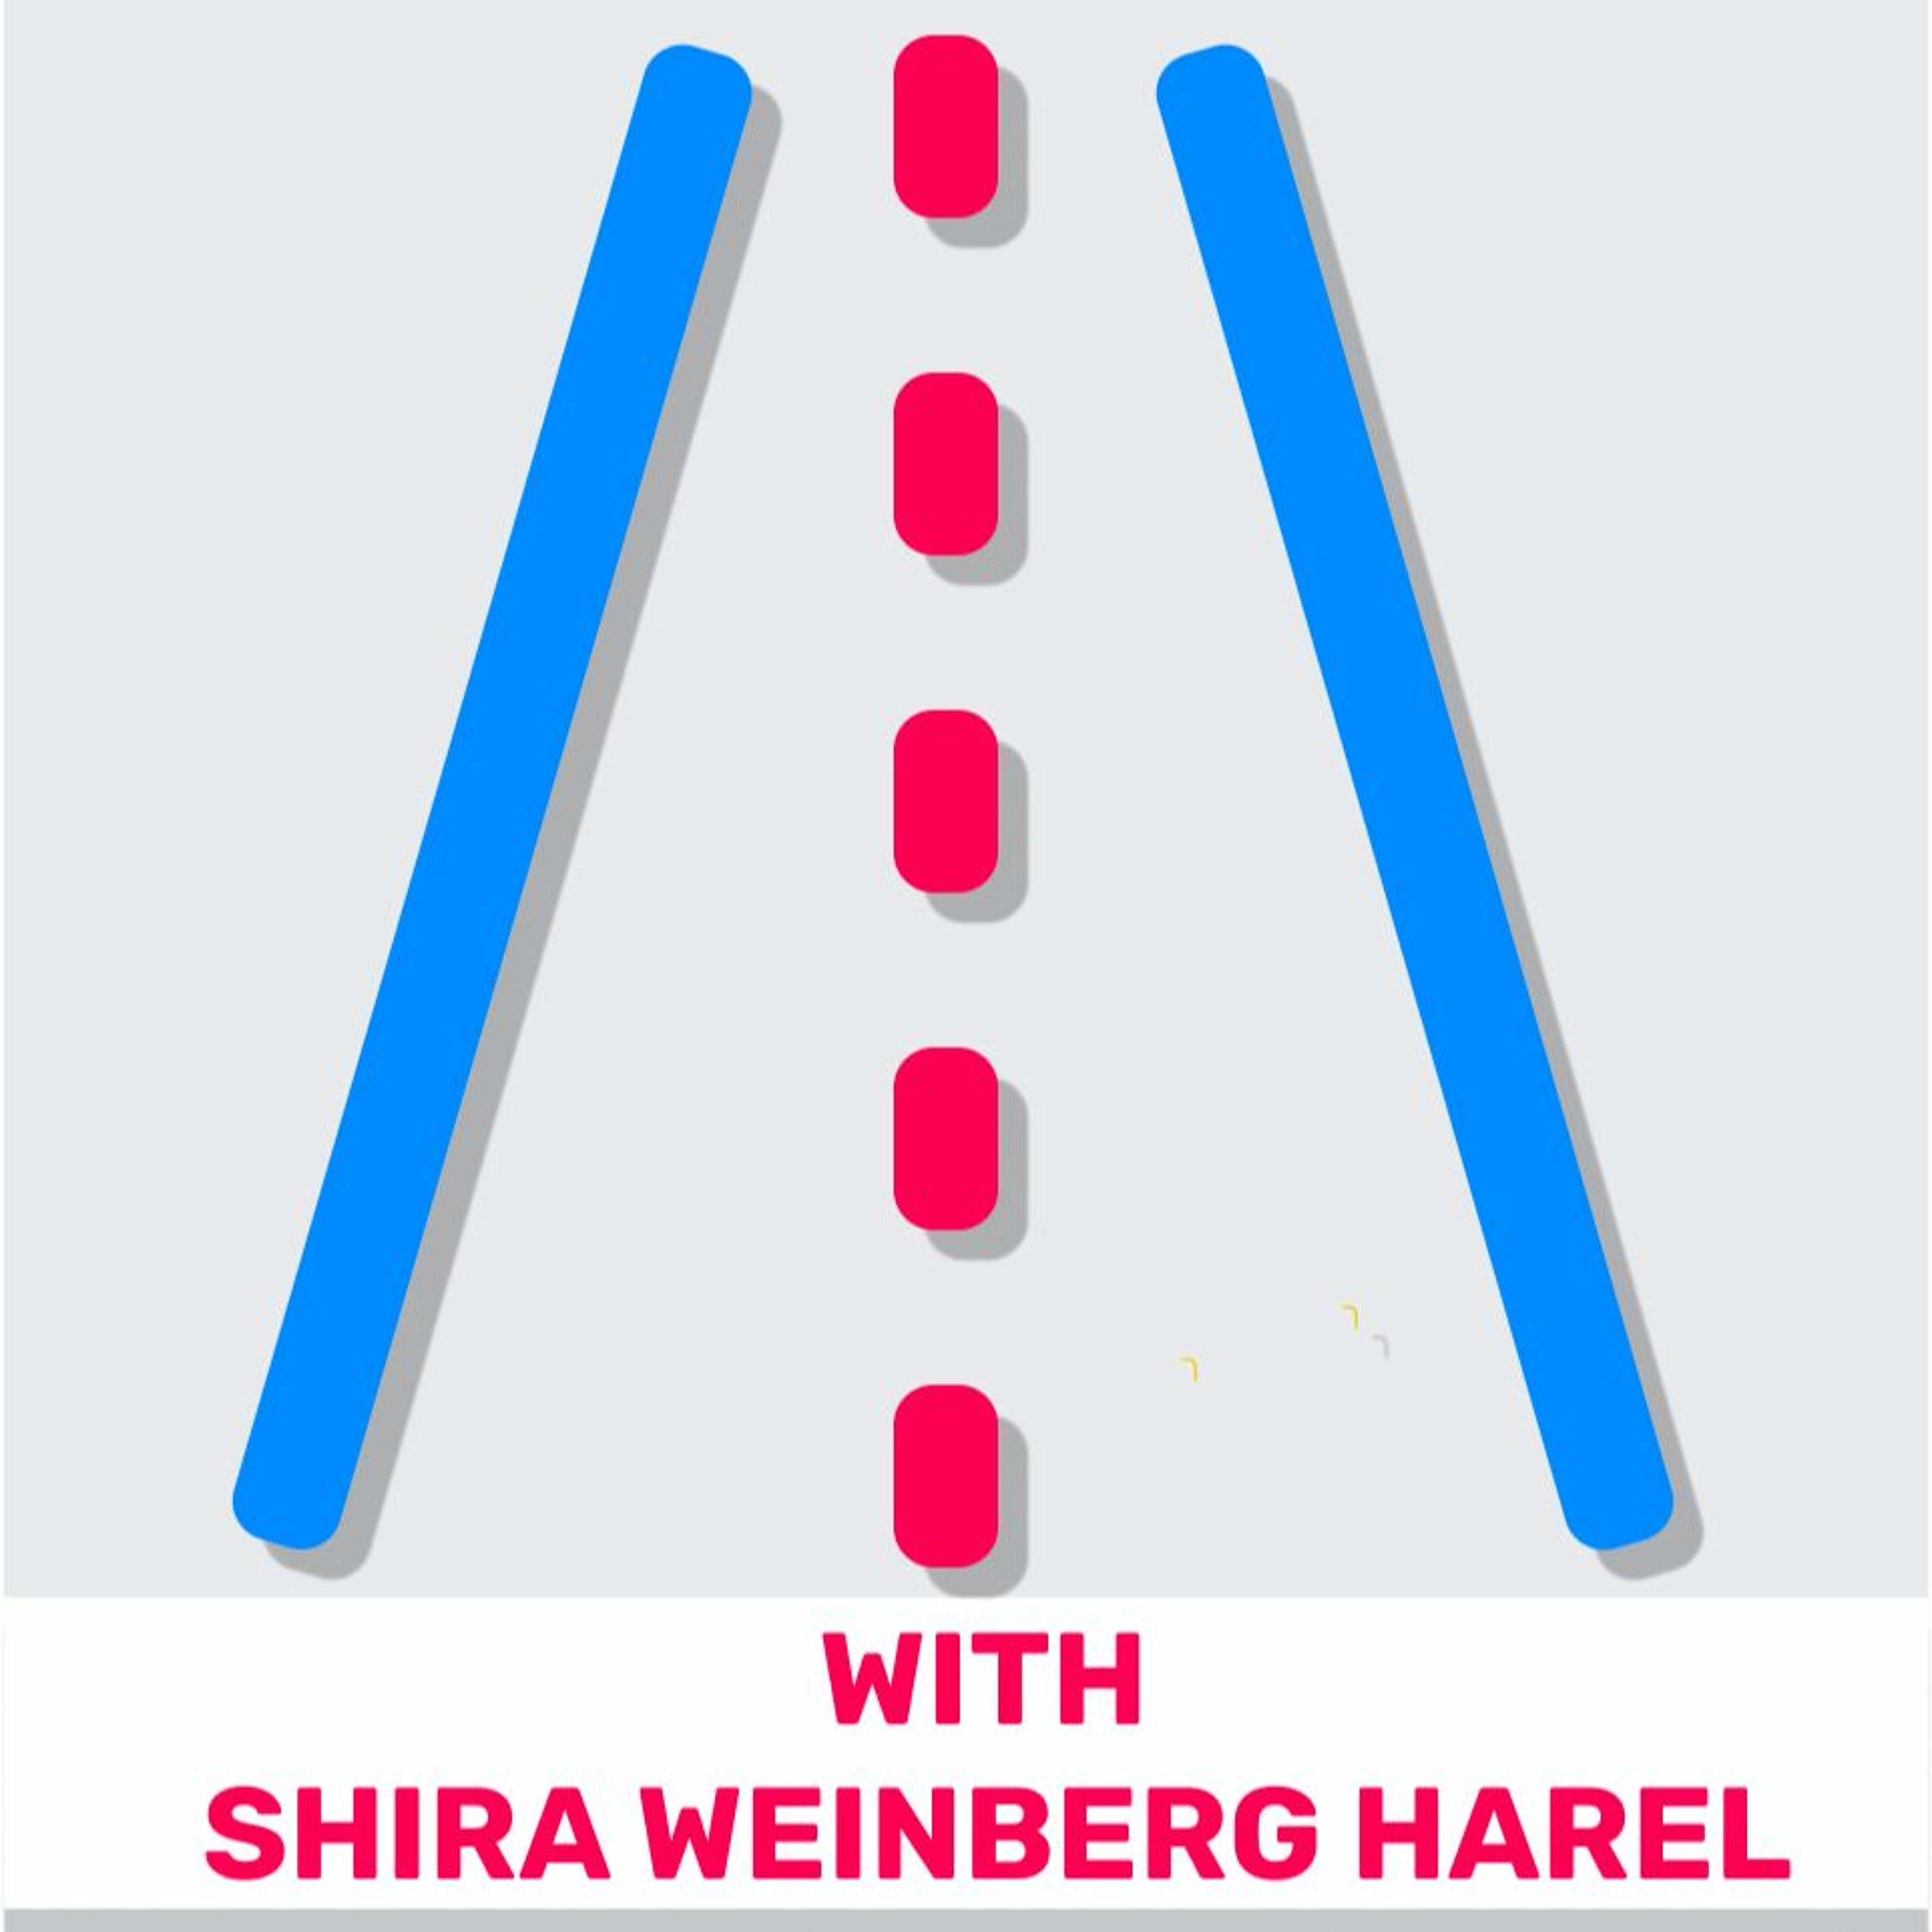 119 – The Principal Product (Featuring Shira Weinberg Harel)